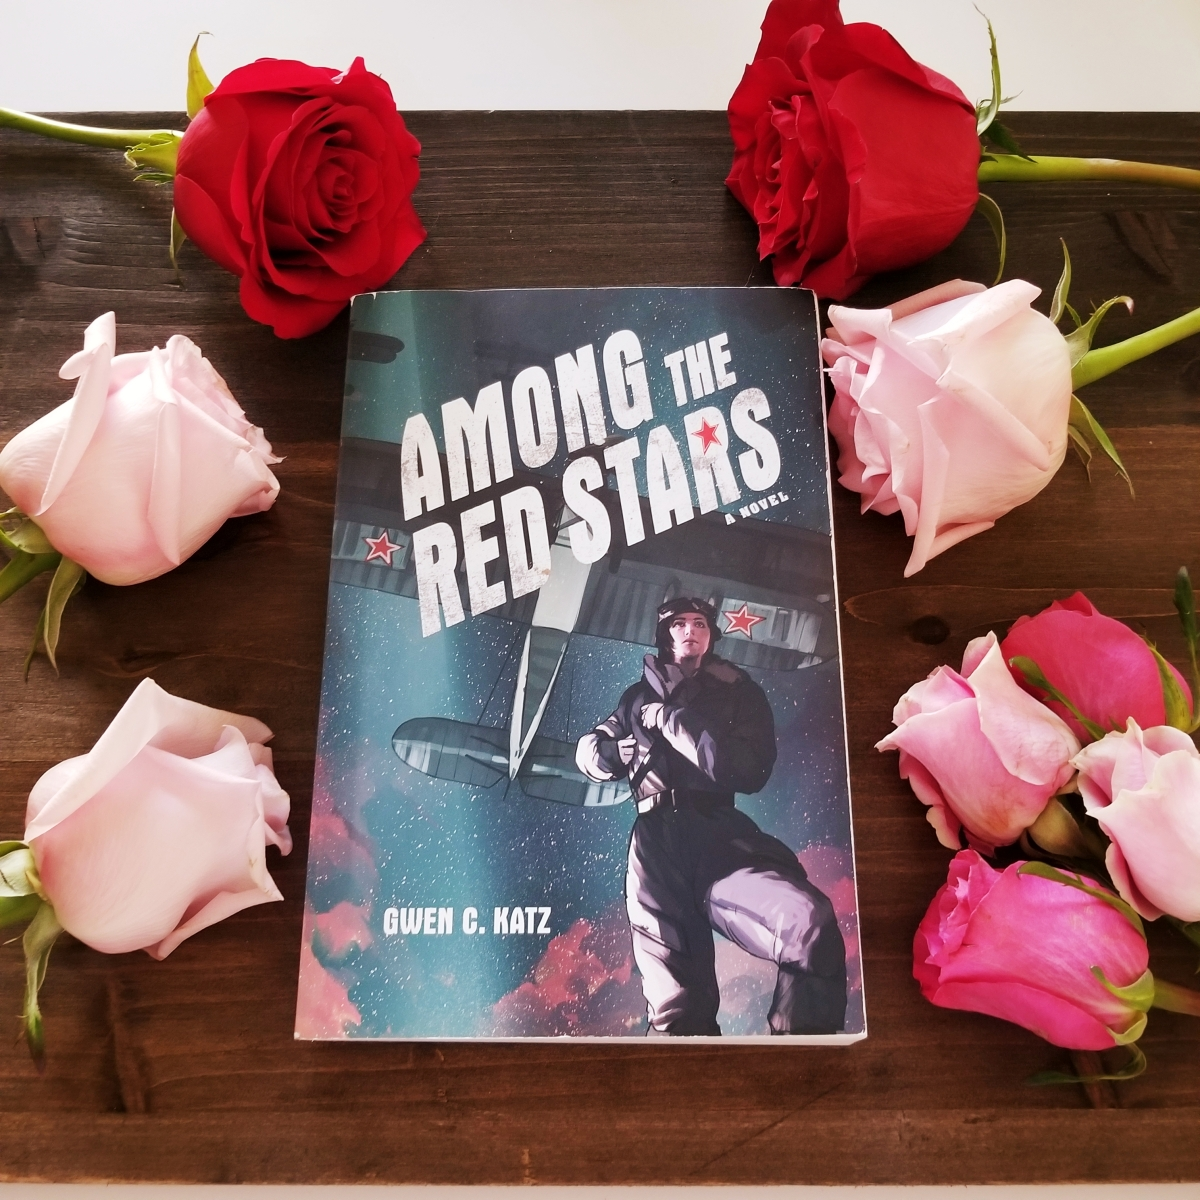 Among the Red Stars by Gwen C. Katz #bookreview #tarheelreader #thramongredstars @gwenckatz @harperbooks @harperteen #amongtheredstars